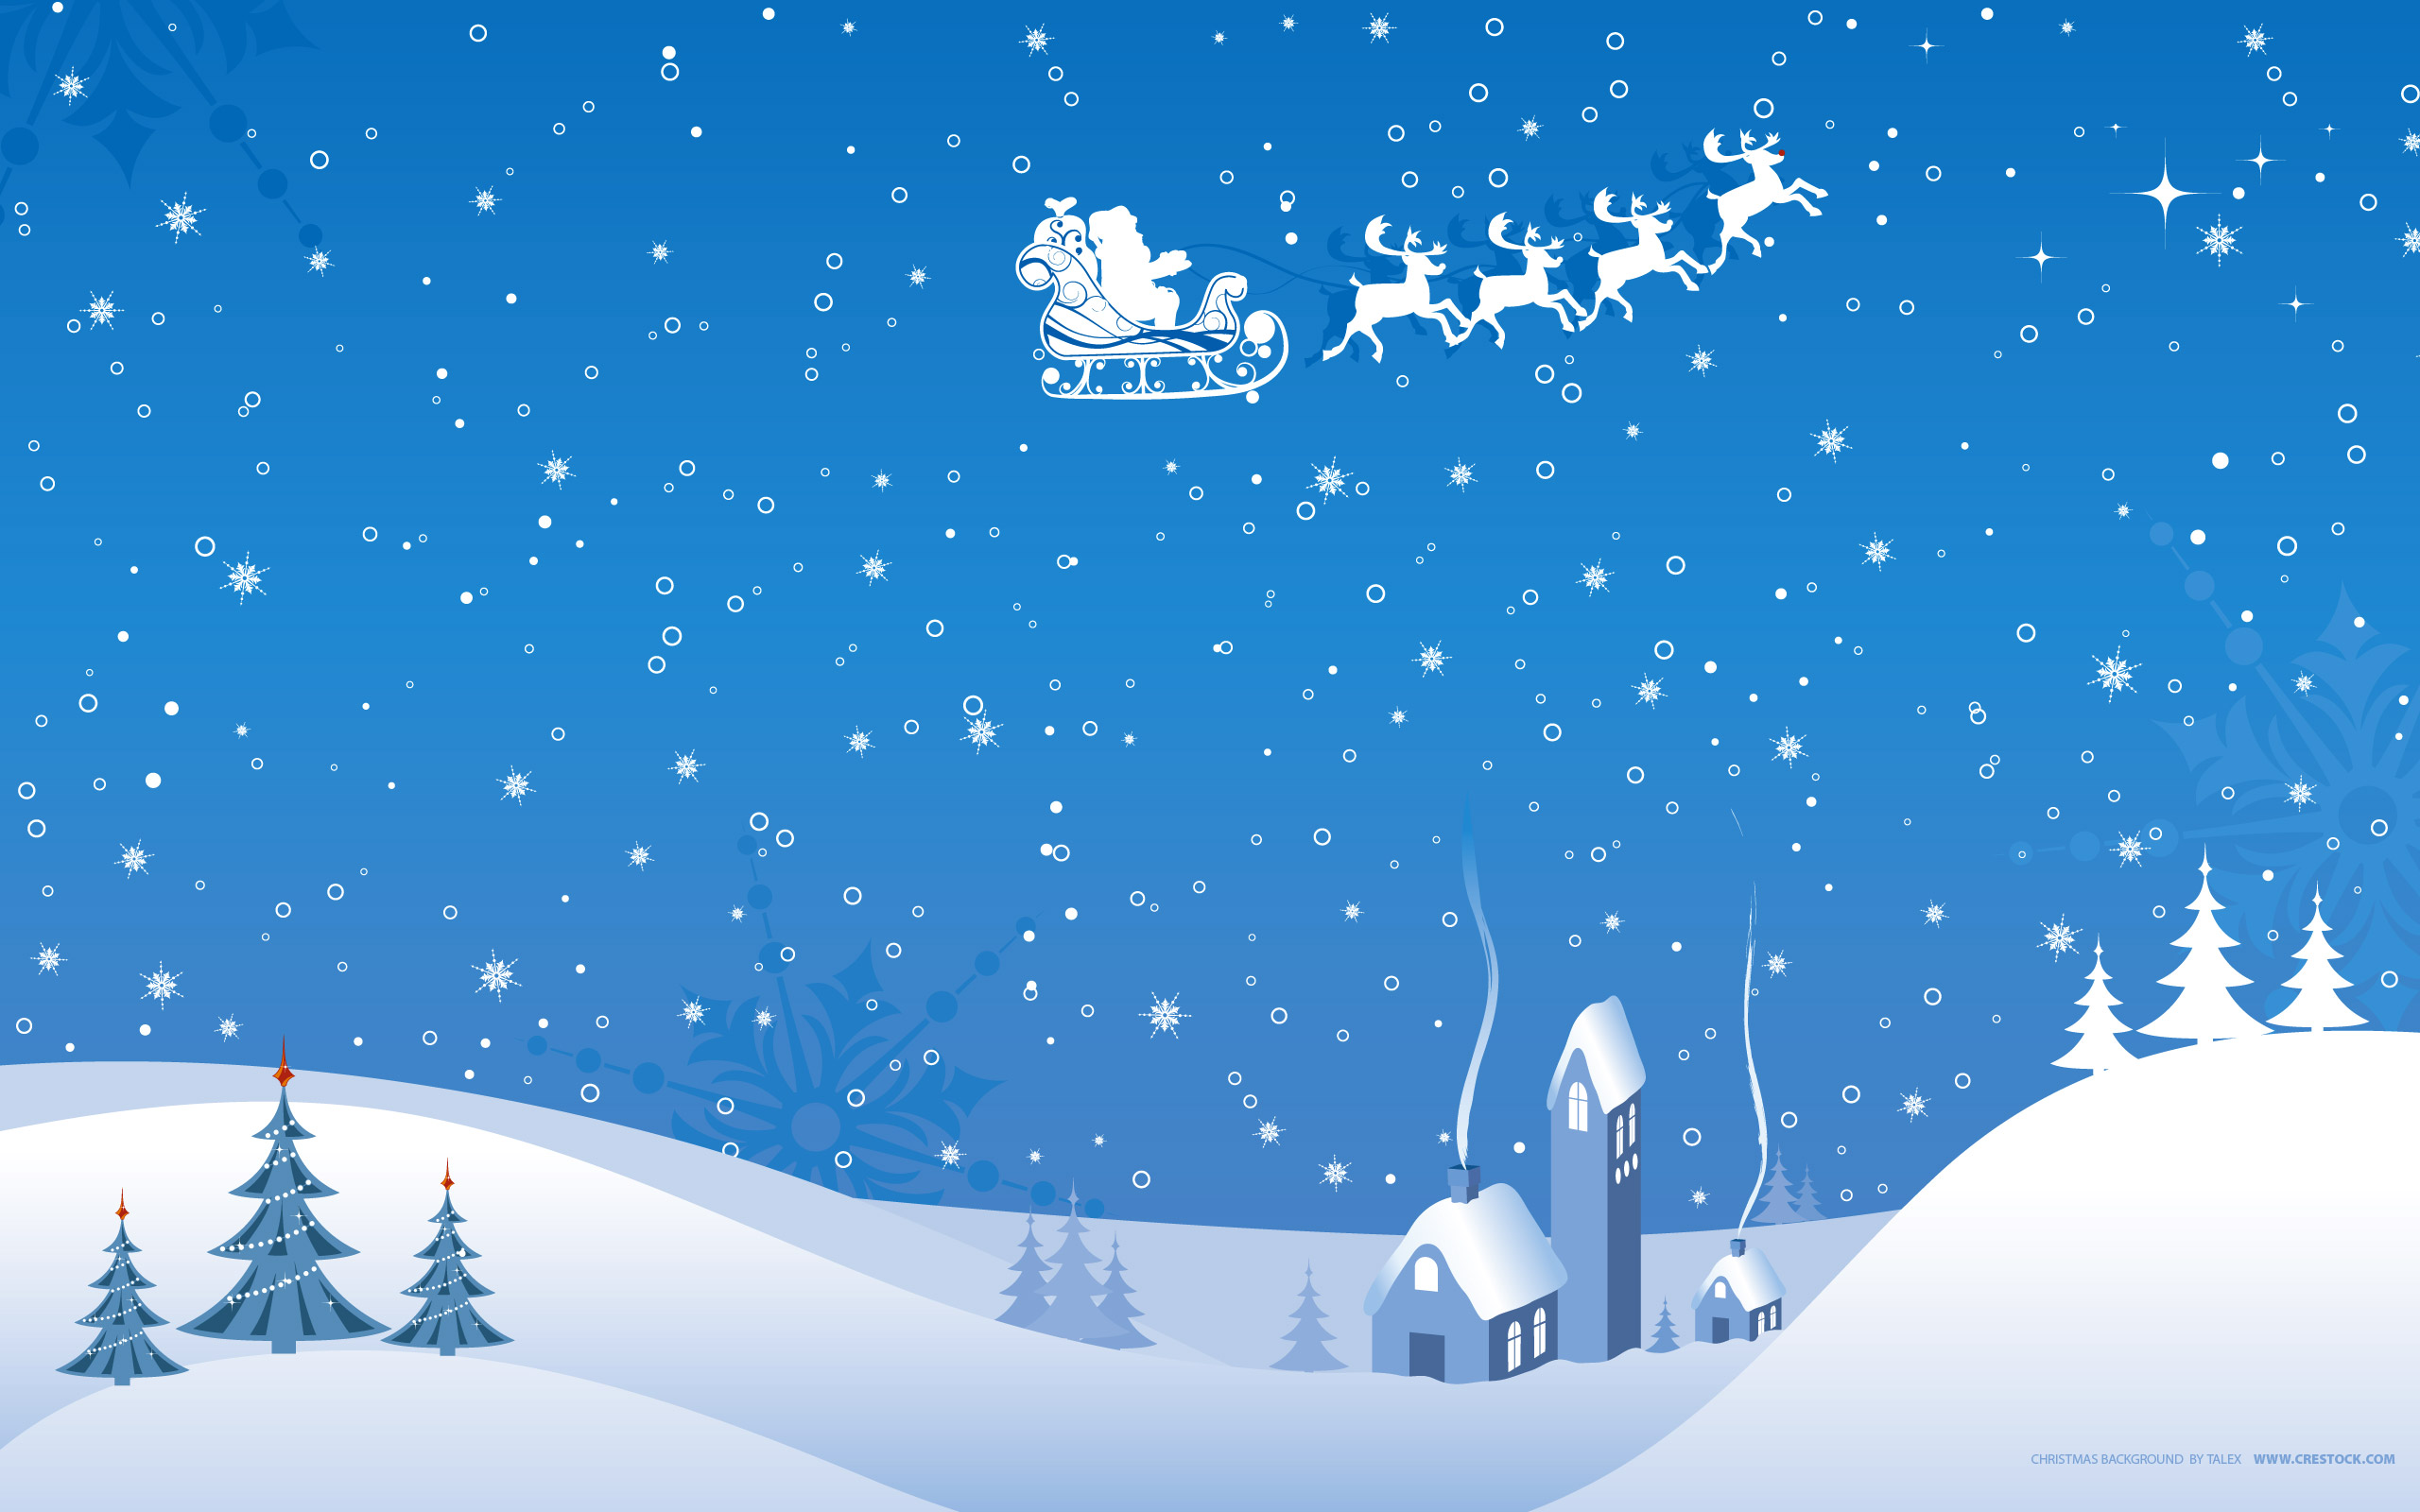 Christmas Backgrounds Download 352218   HD Wallpaper Download 2560x1600